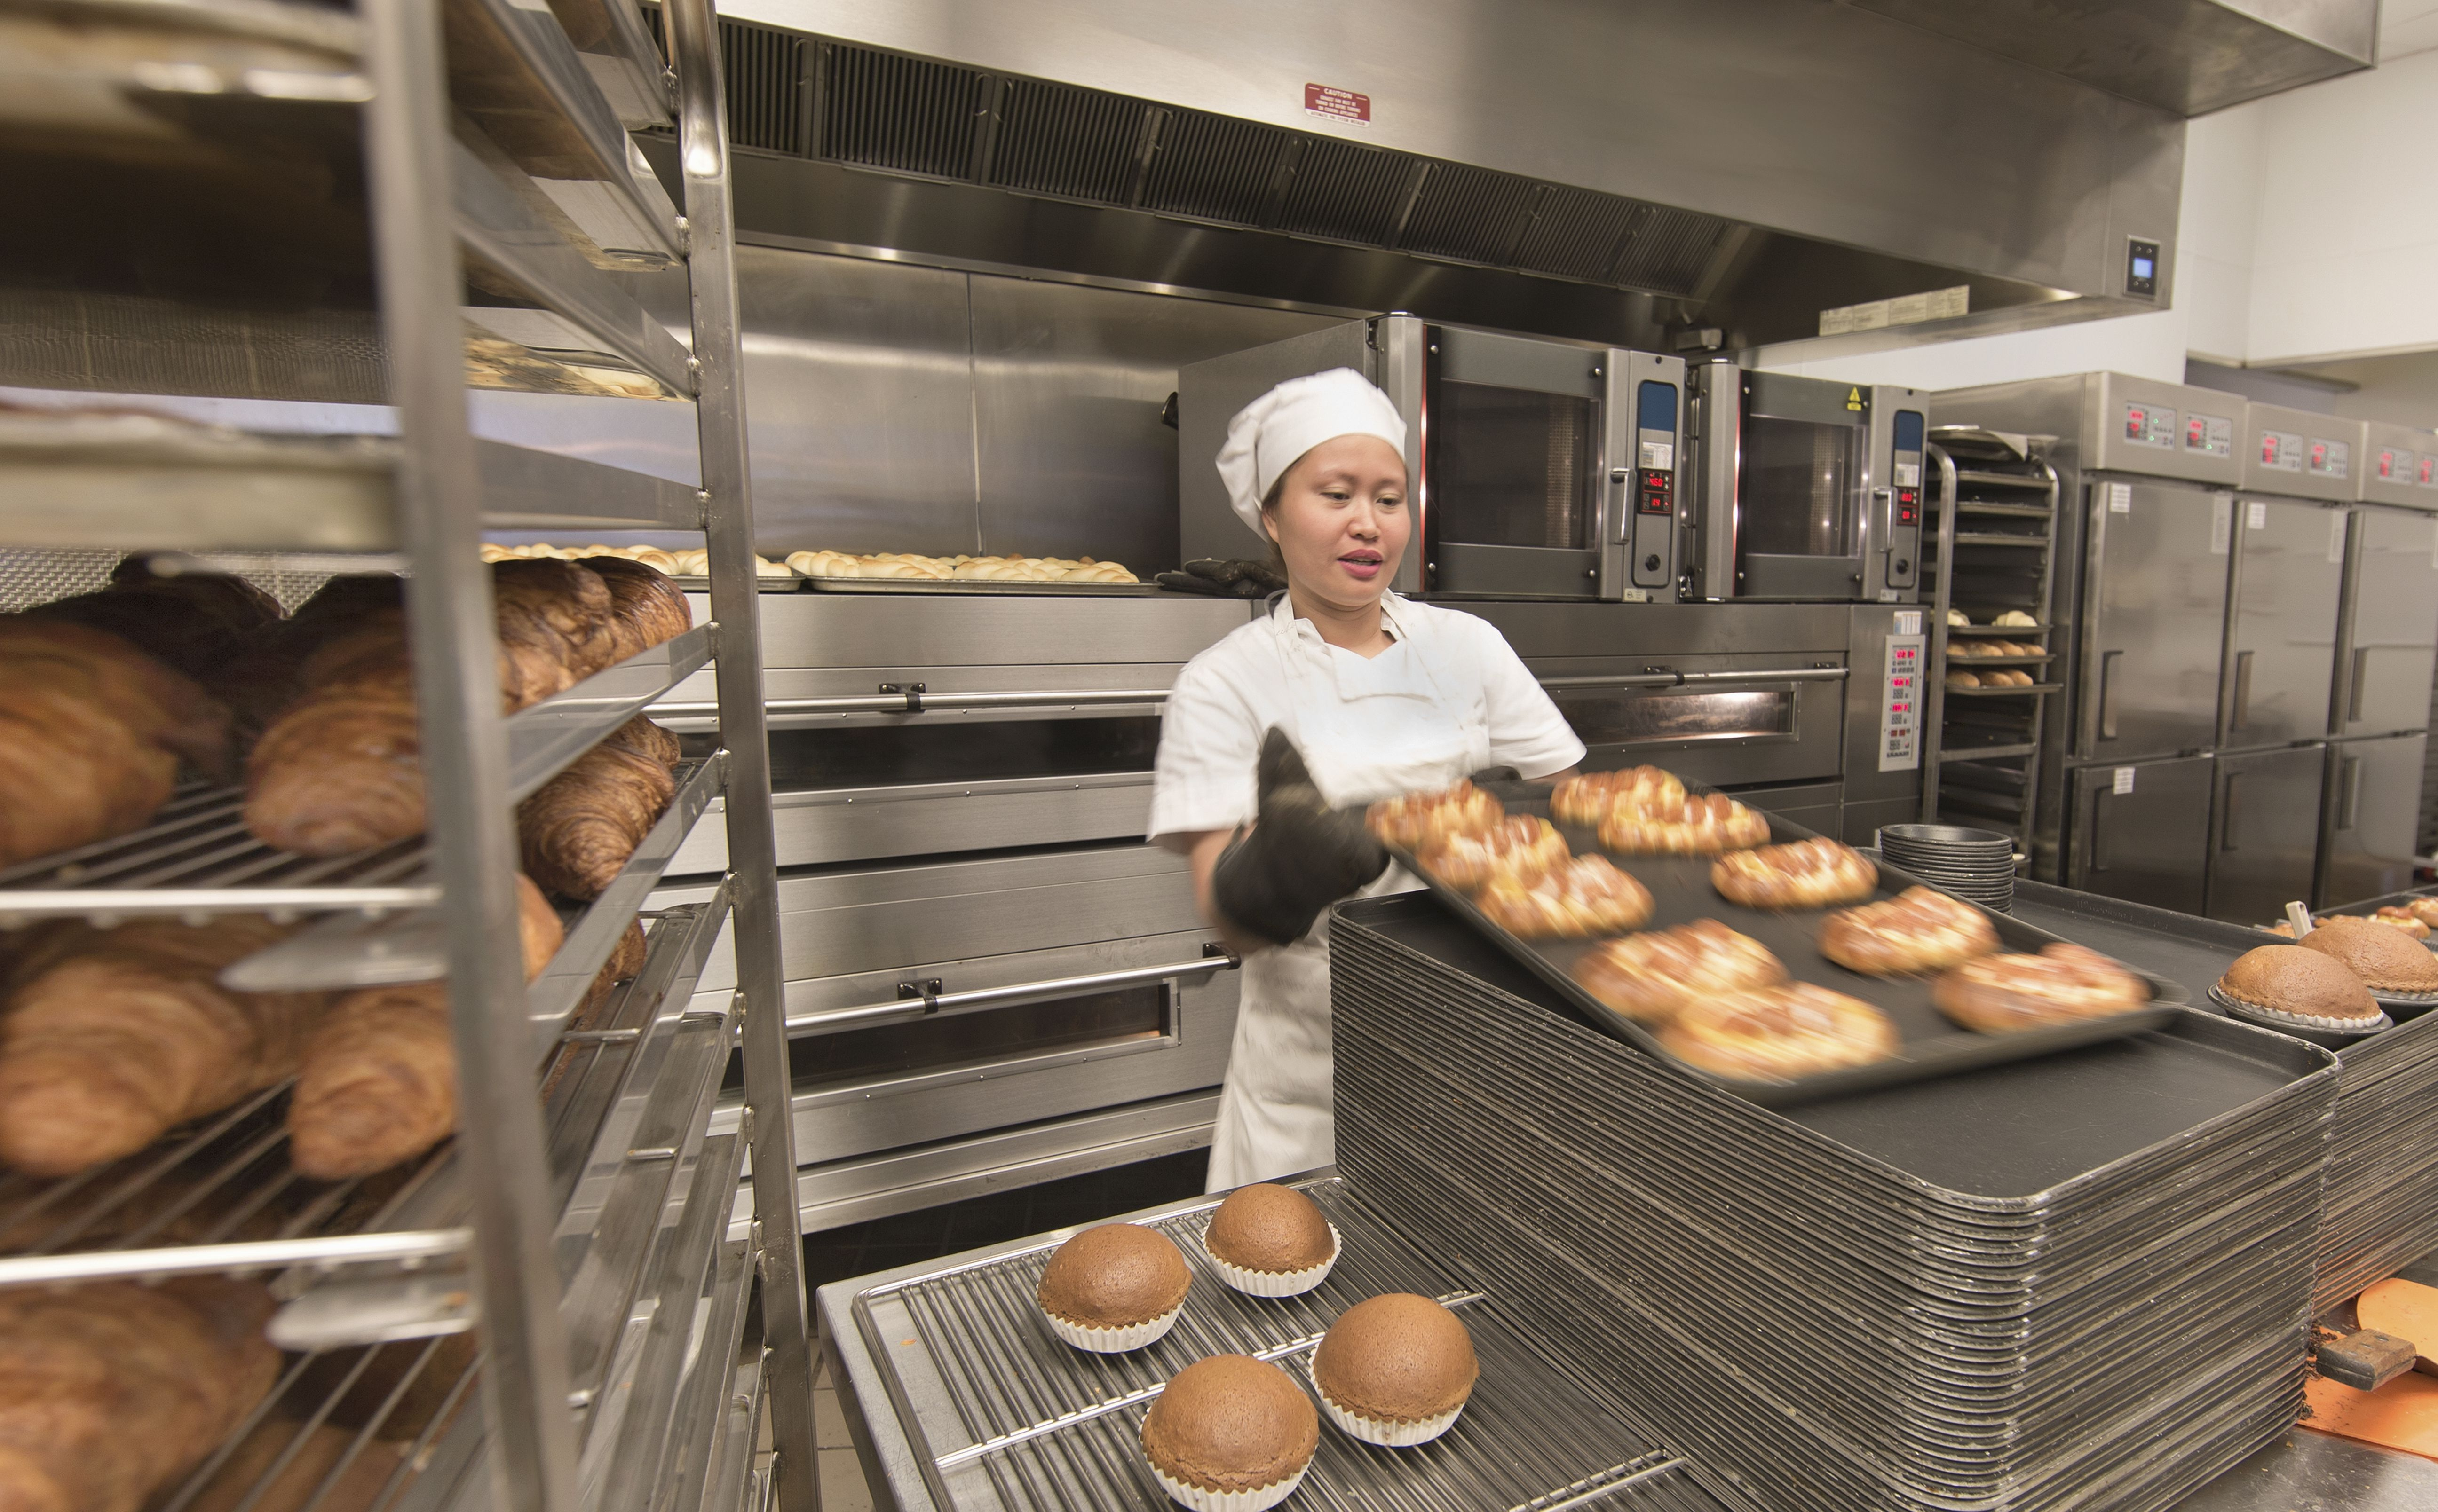 A woman baker working in a commercial kitchen